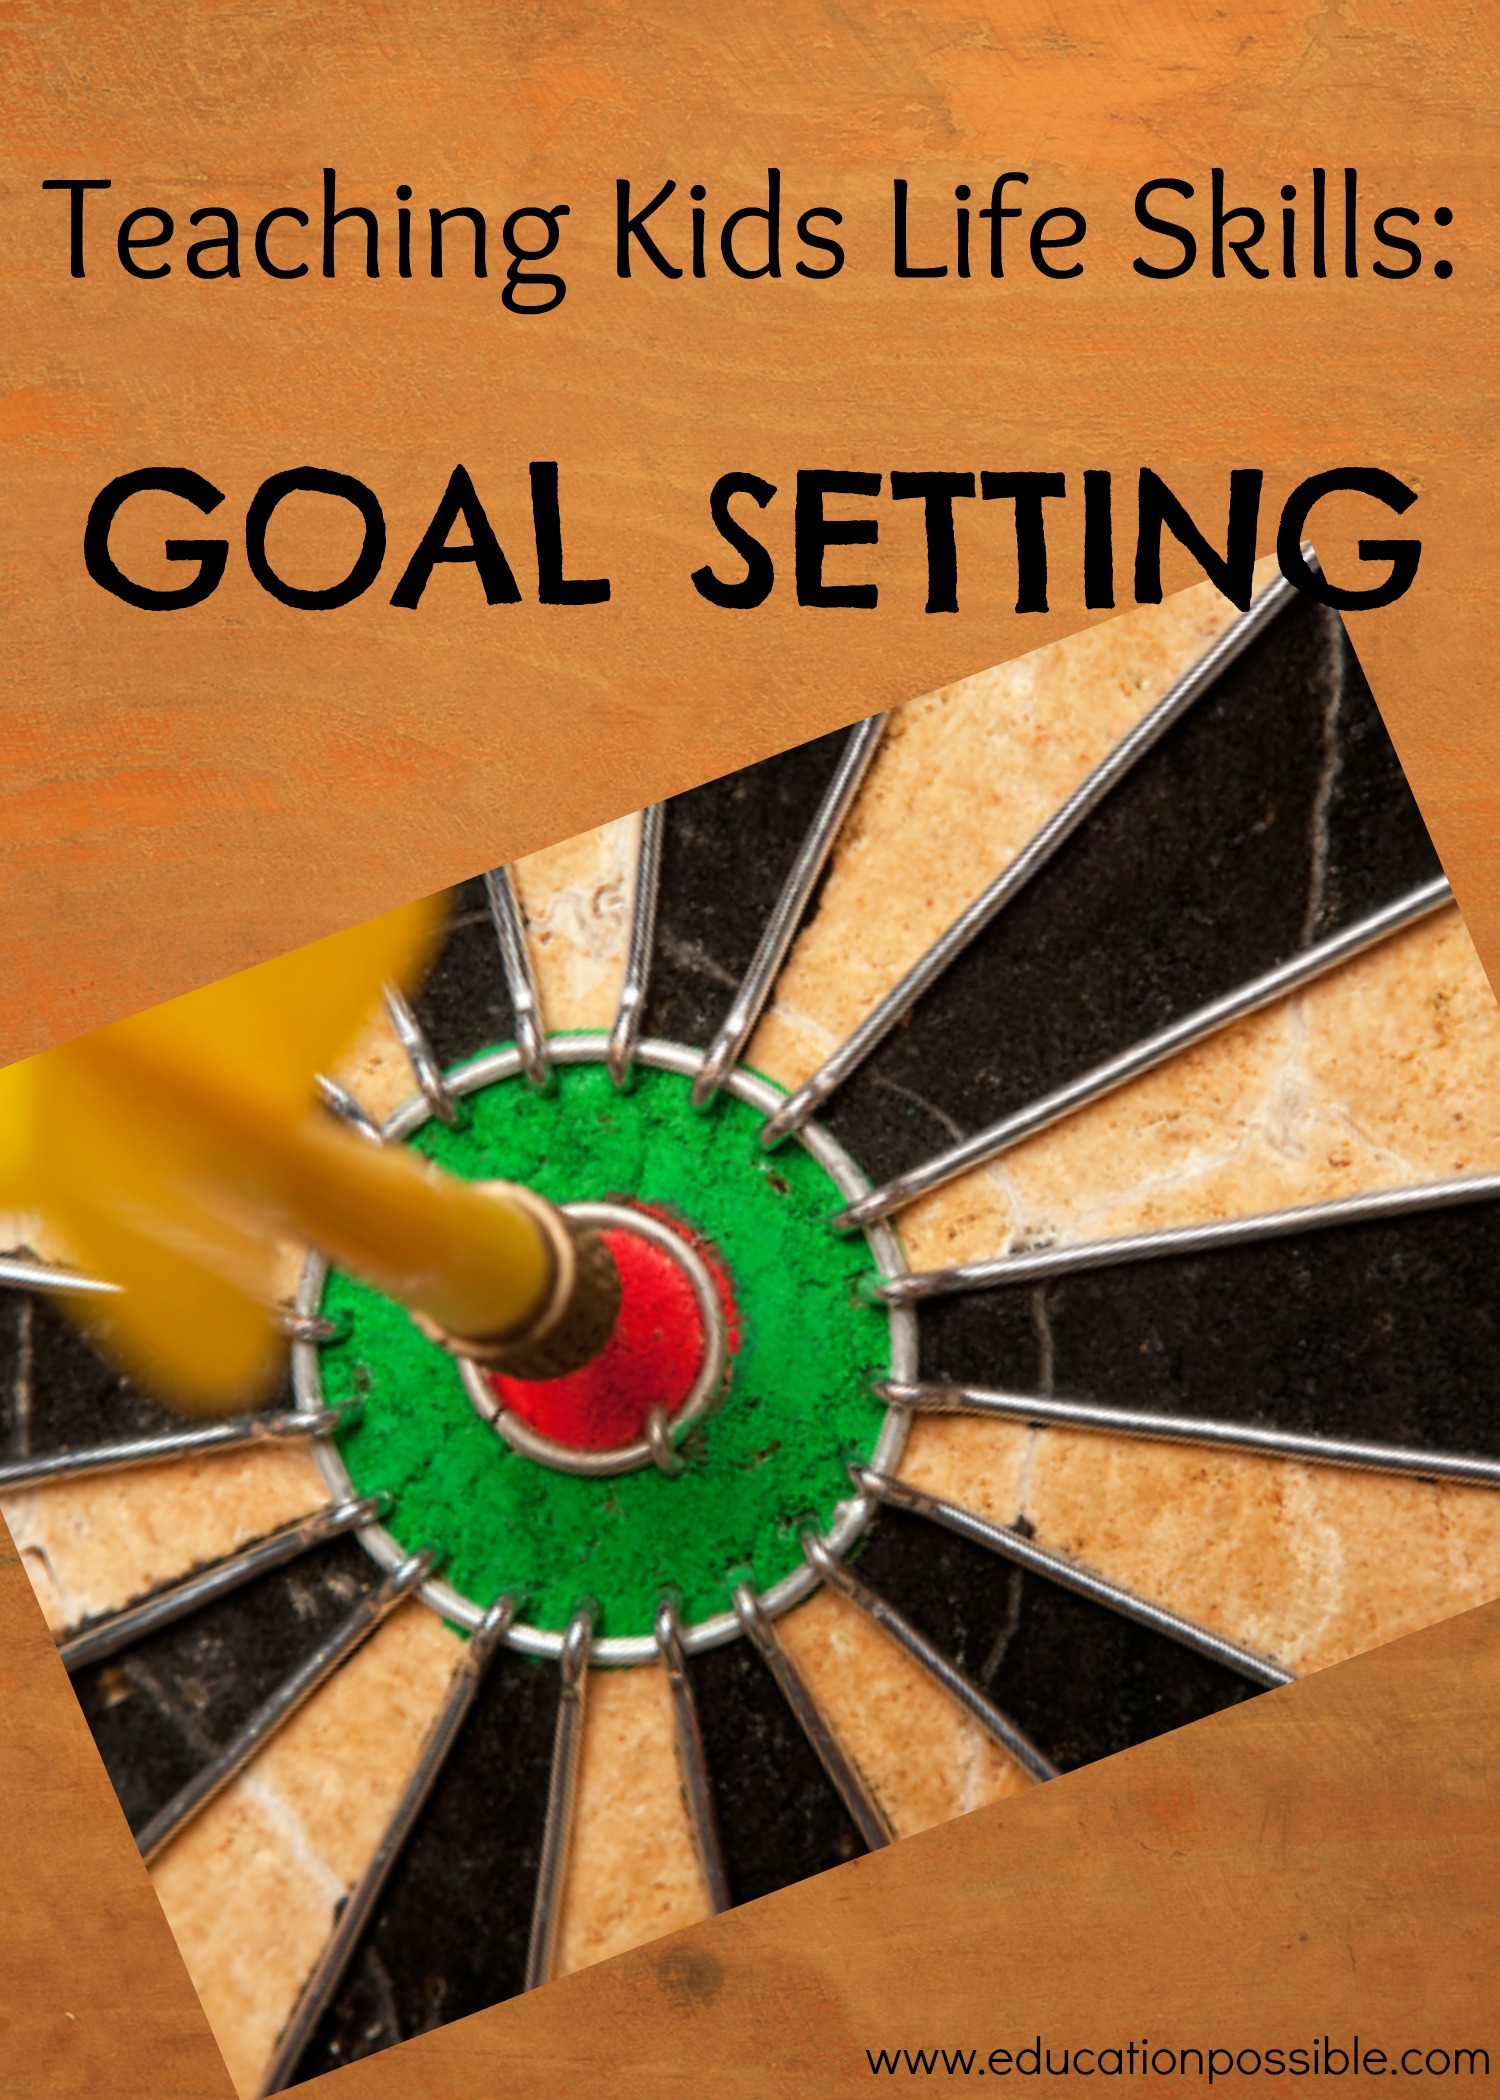 Teaching Kids Life Skills Goal Setting